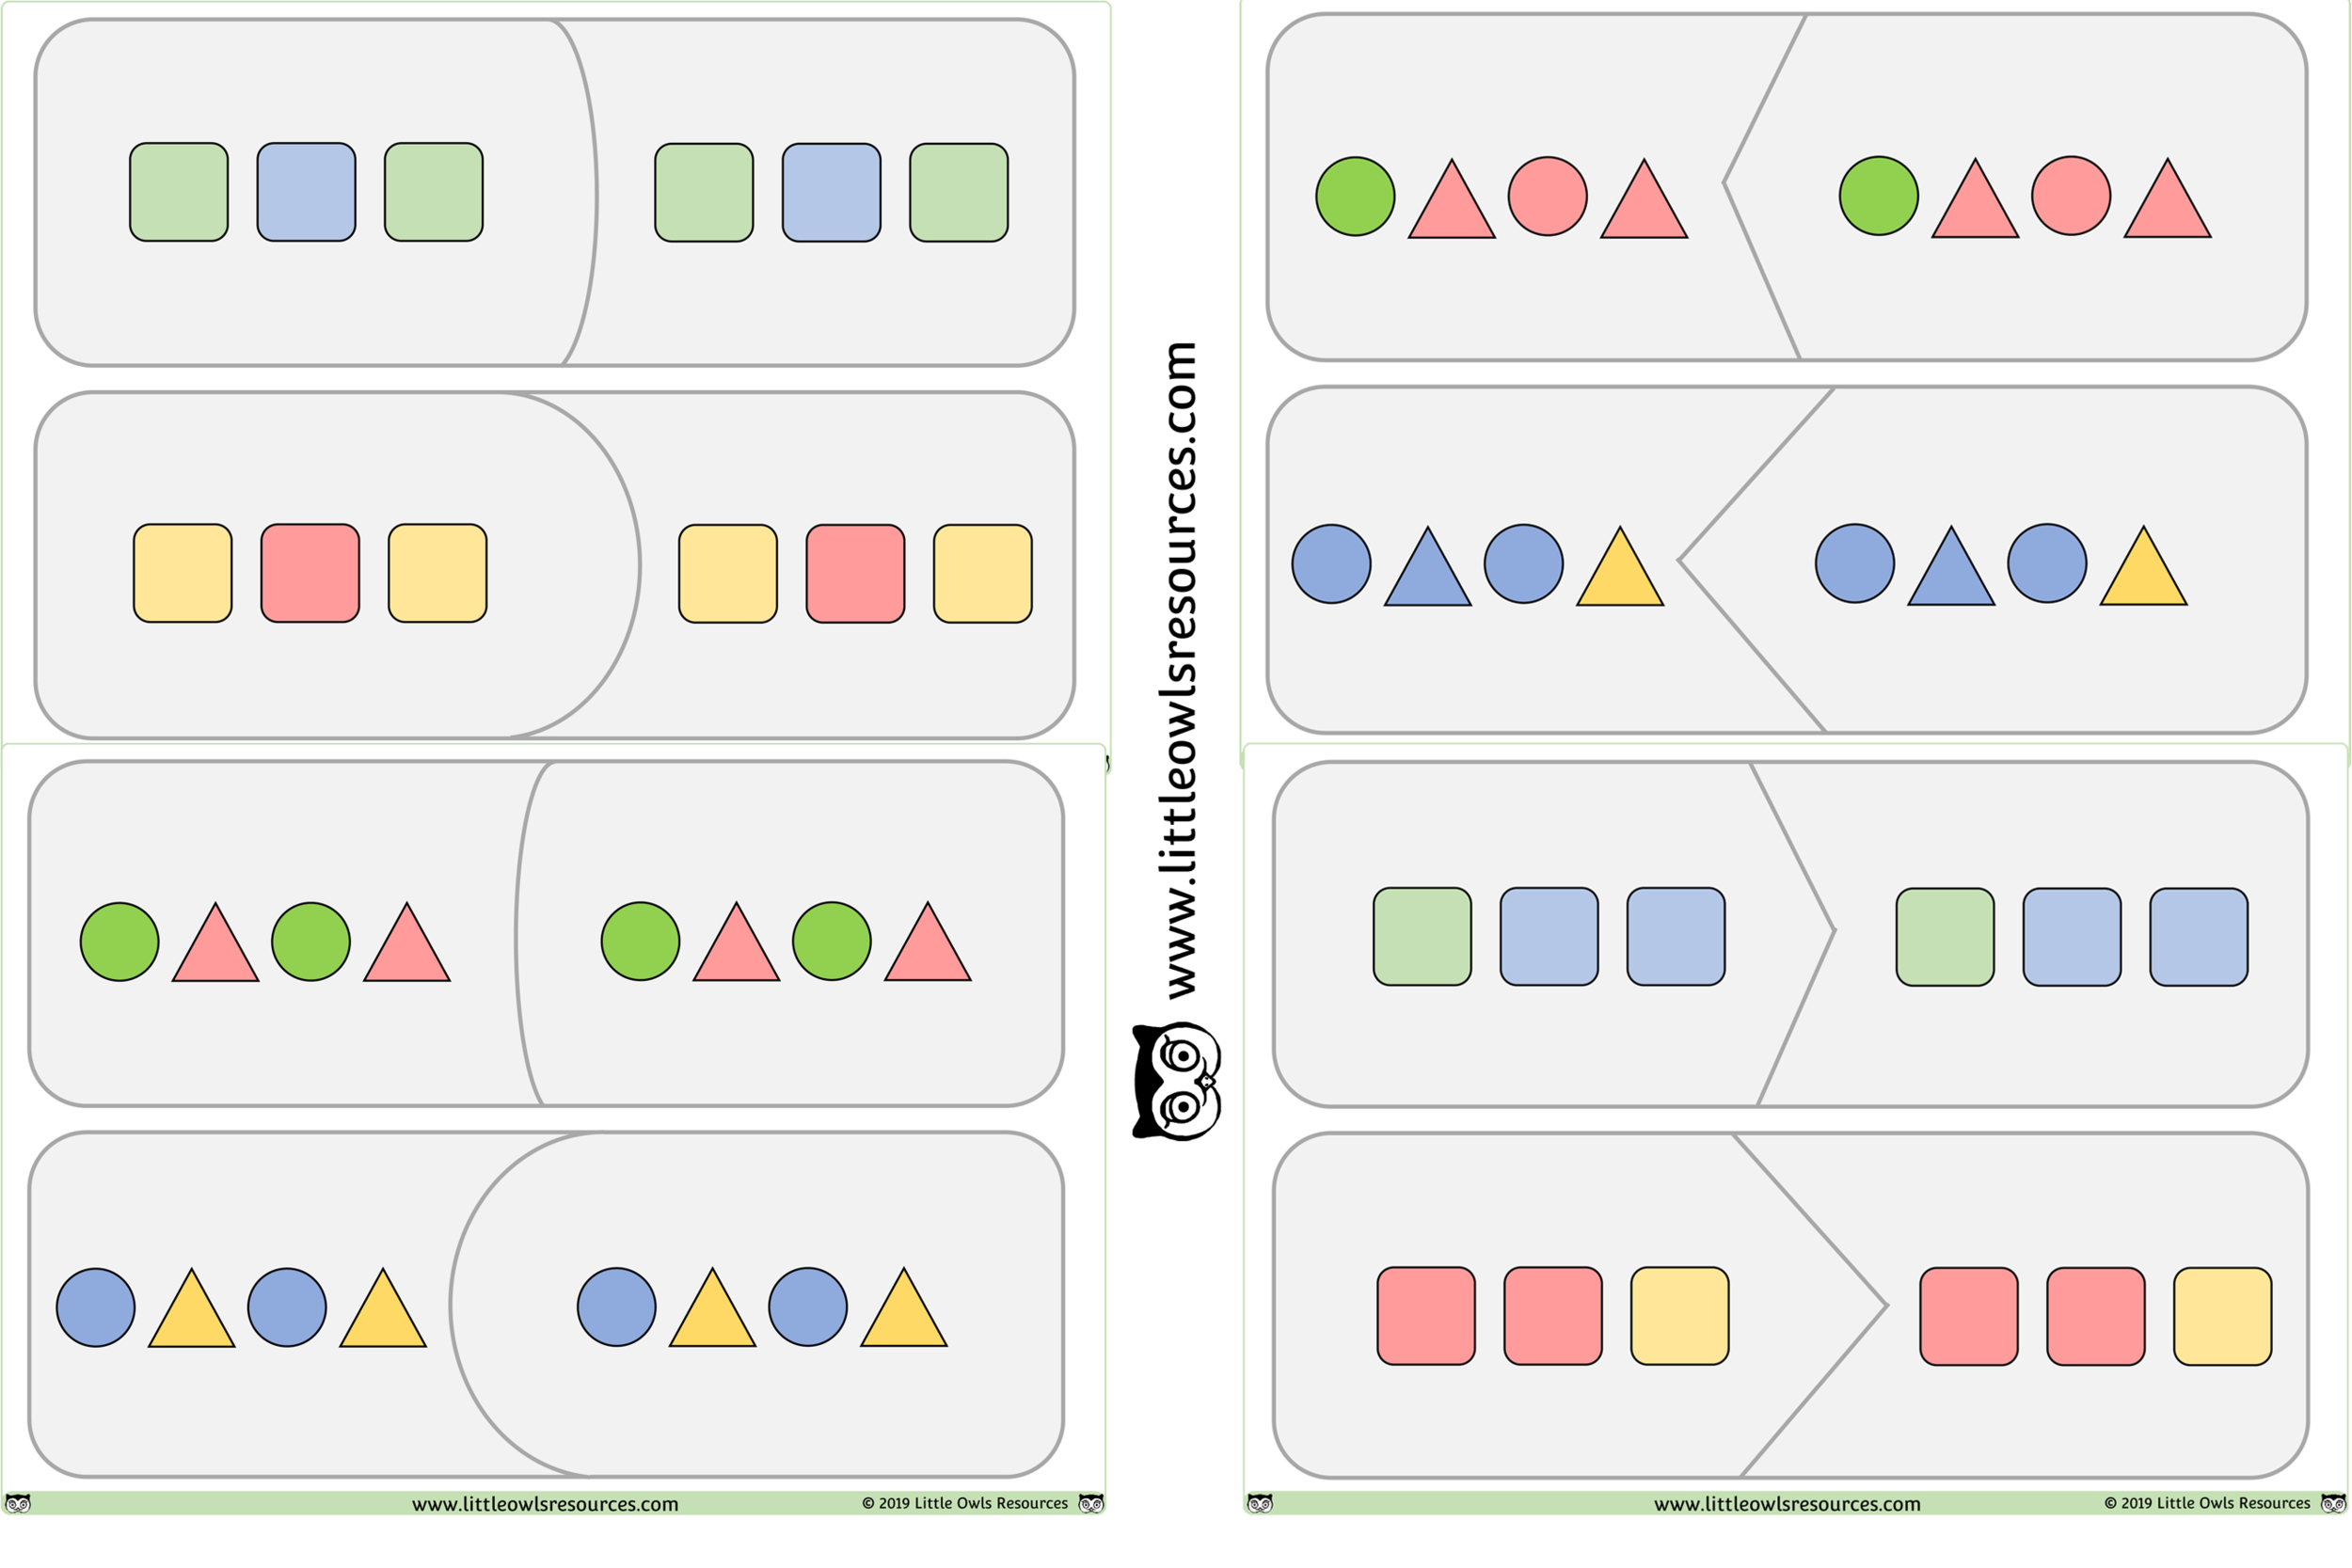 This is a graphic of Printable Match Game throughout preschooler